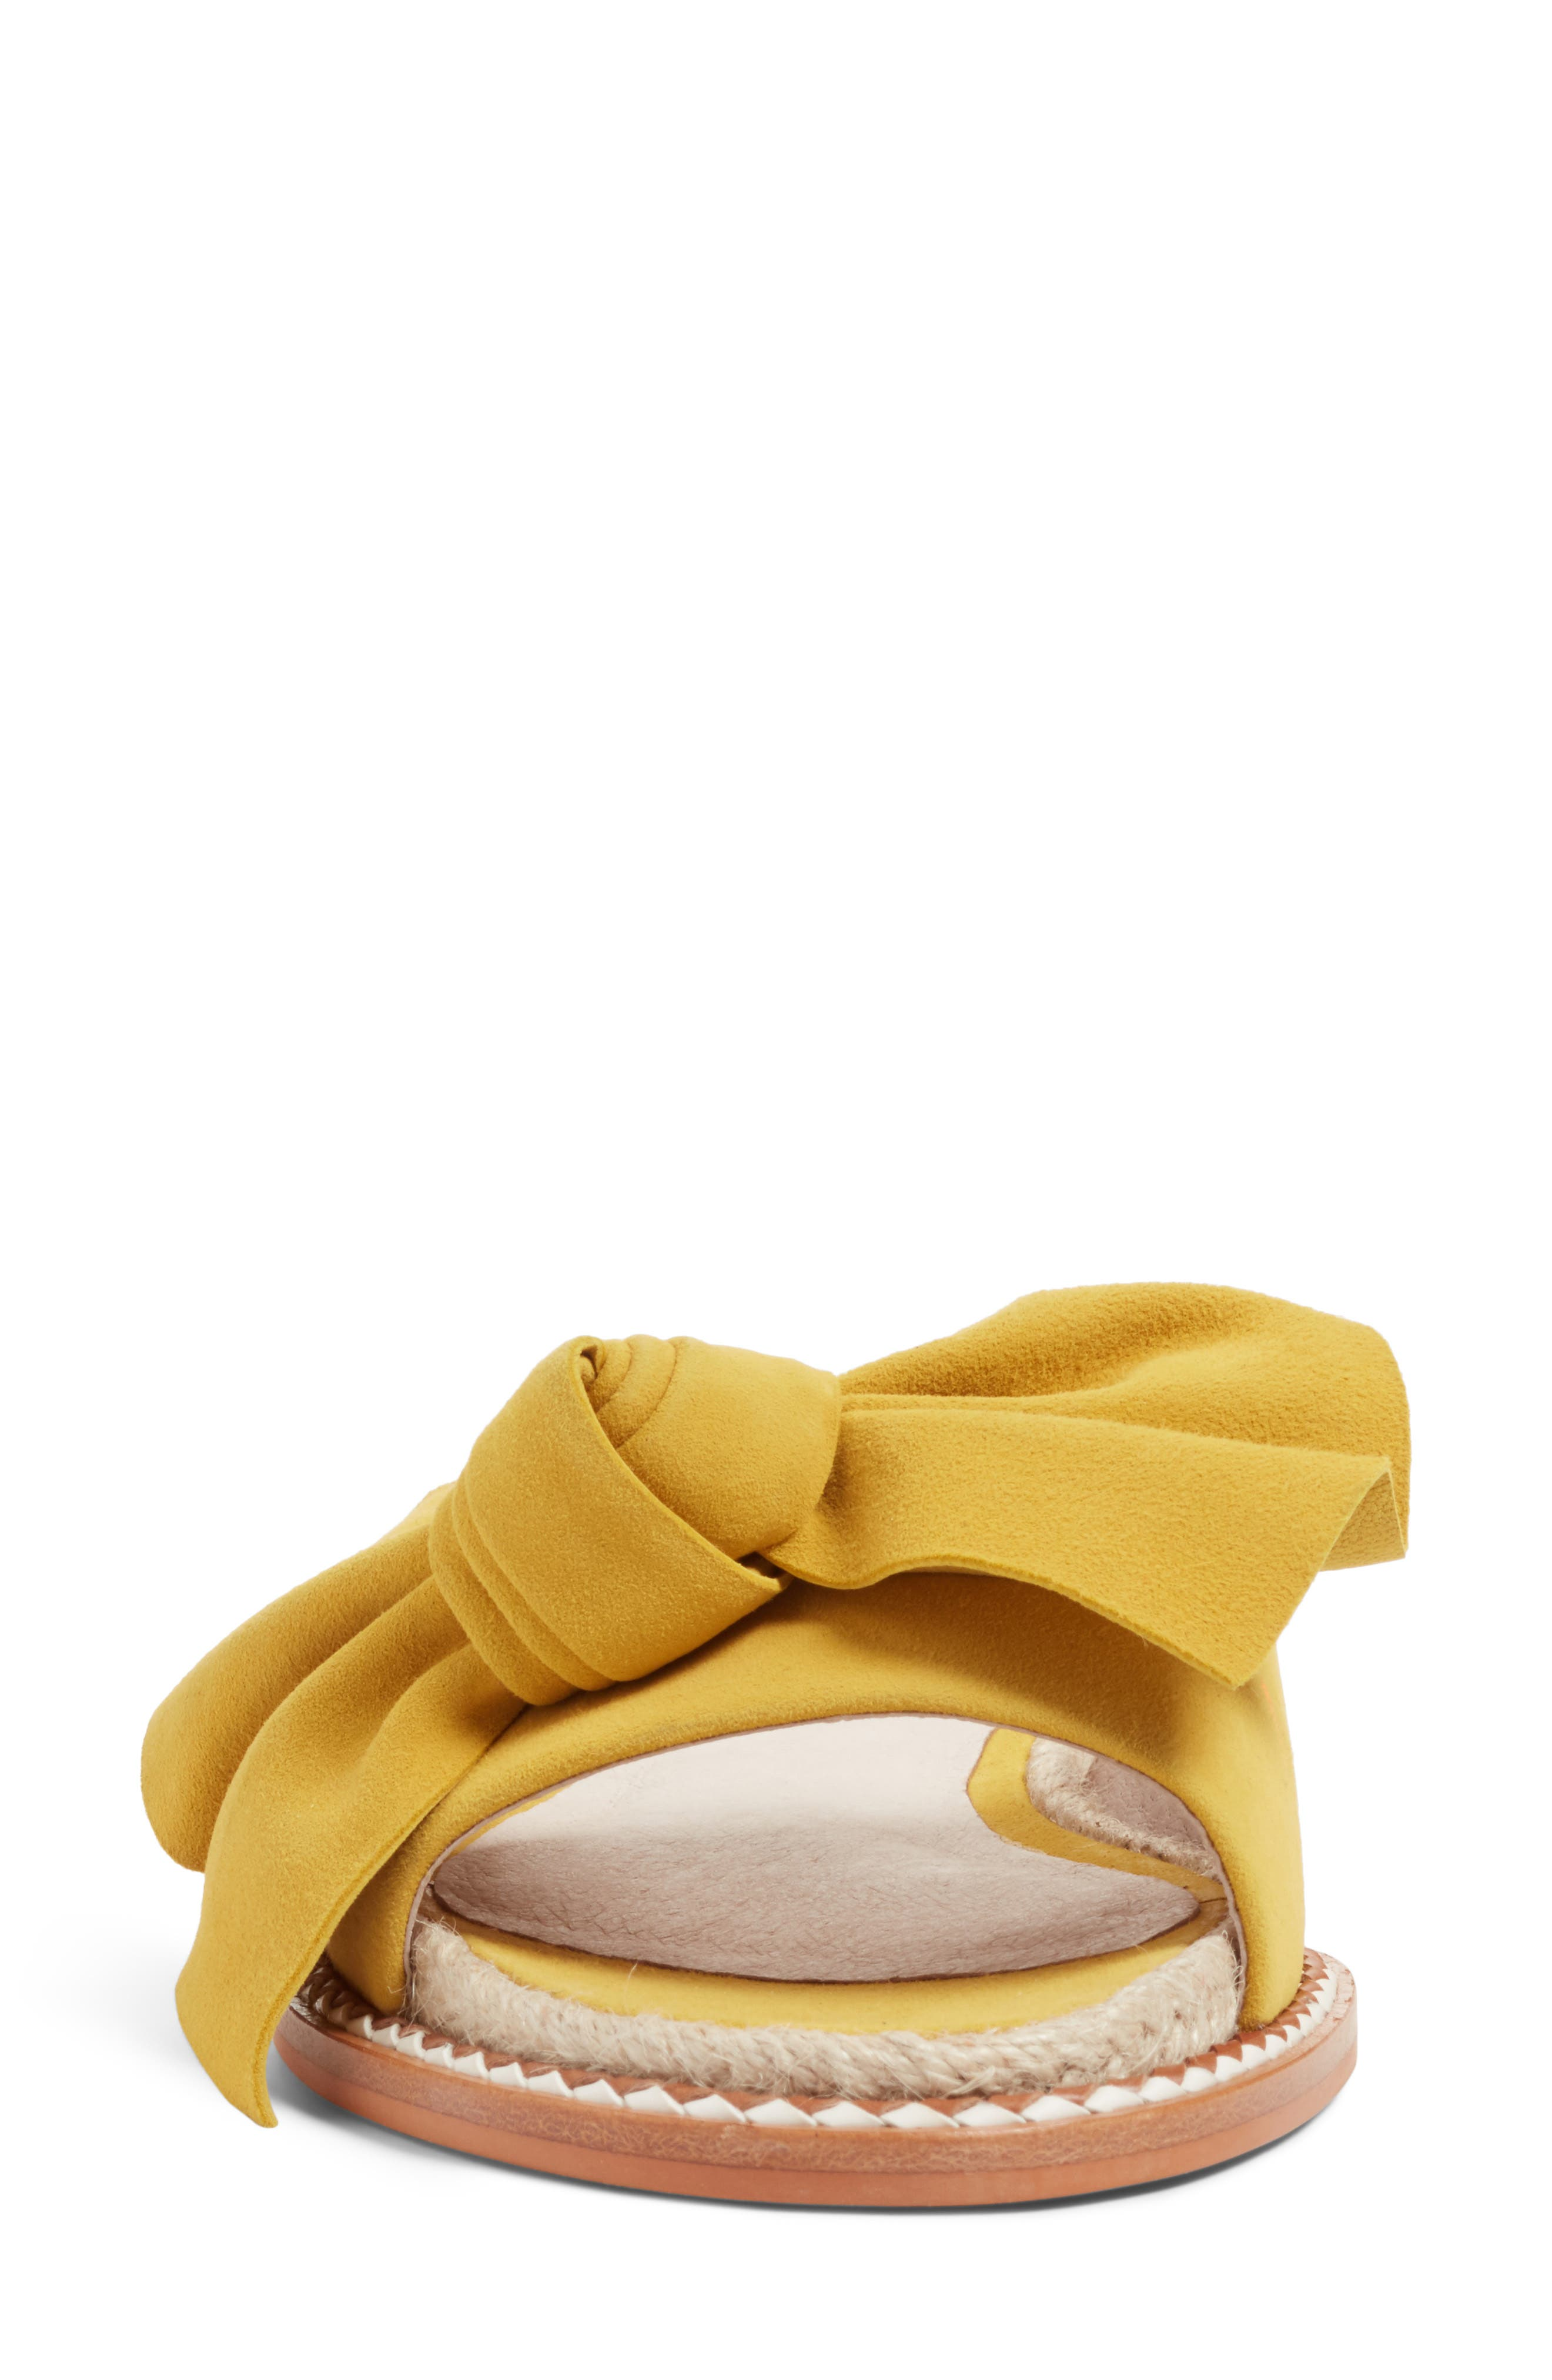 Darcie Slide Sandal,                             Alternate thumbnail 4, color,                             Mustard Suede